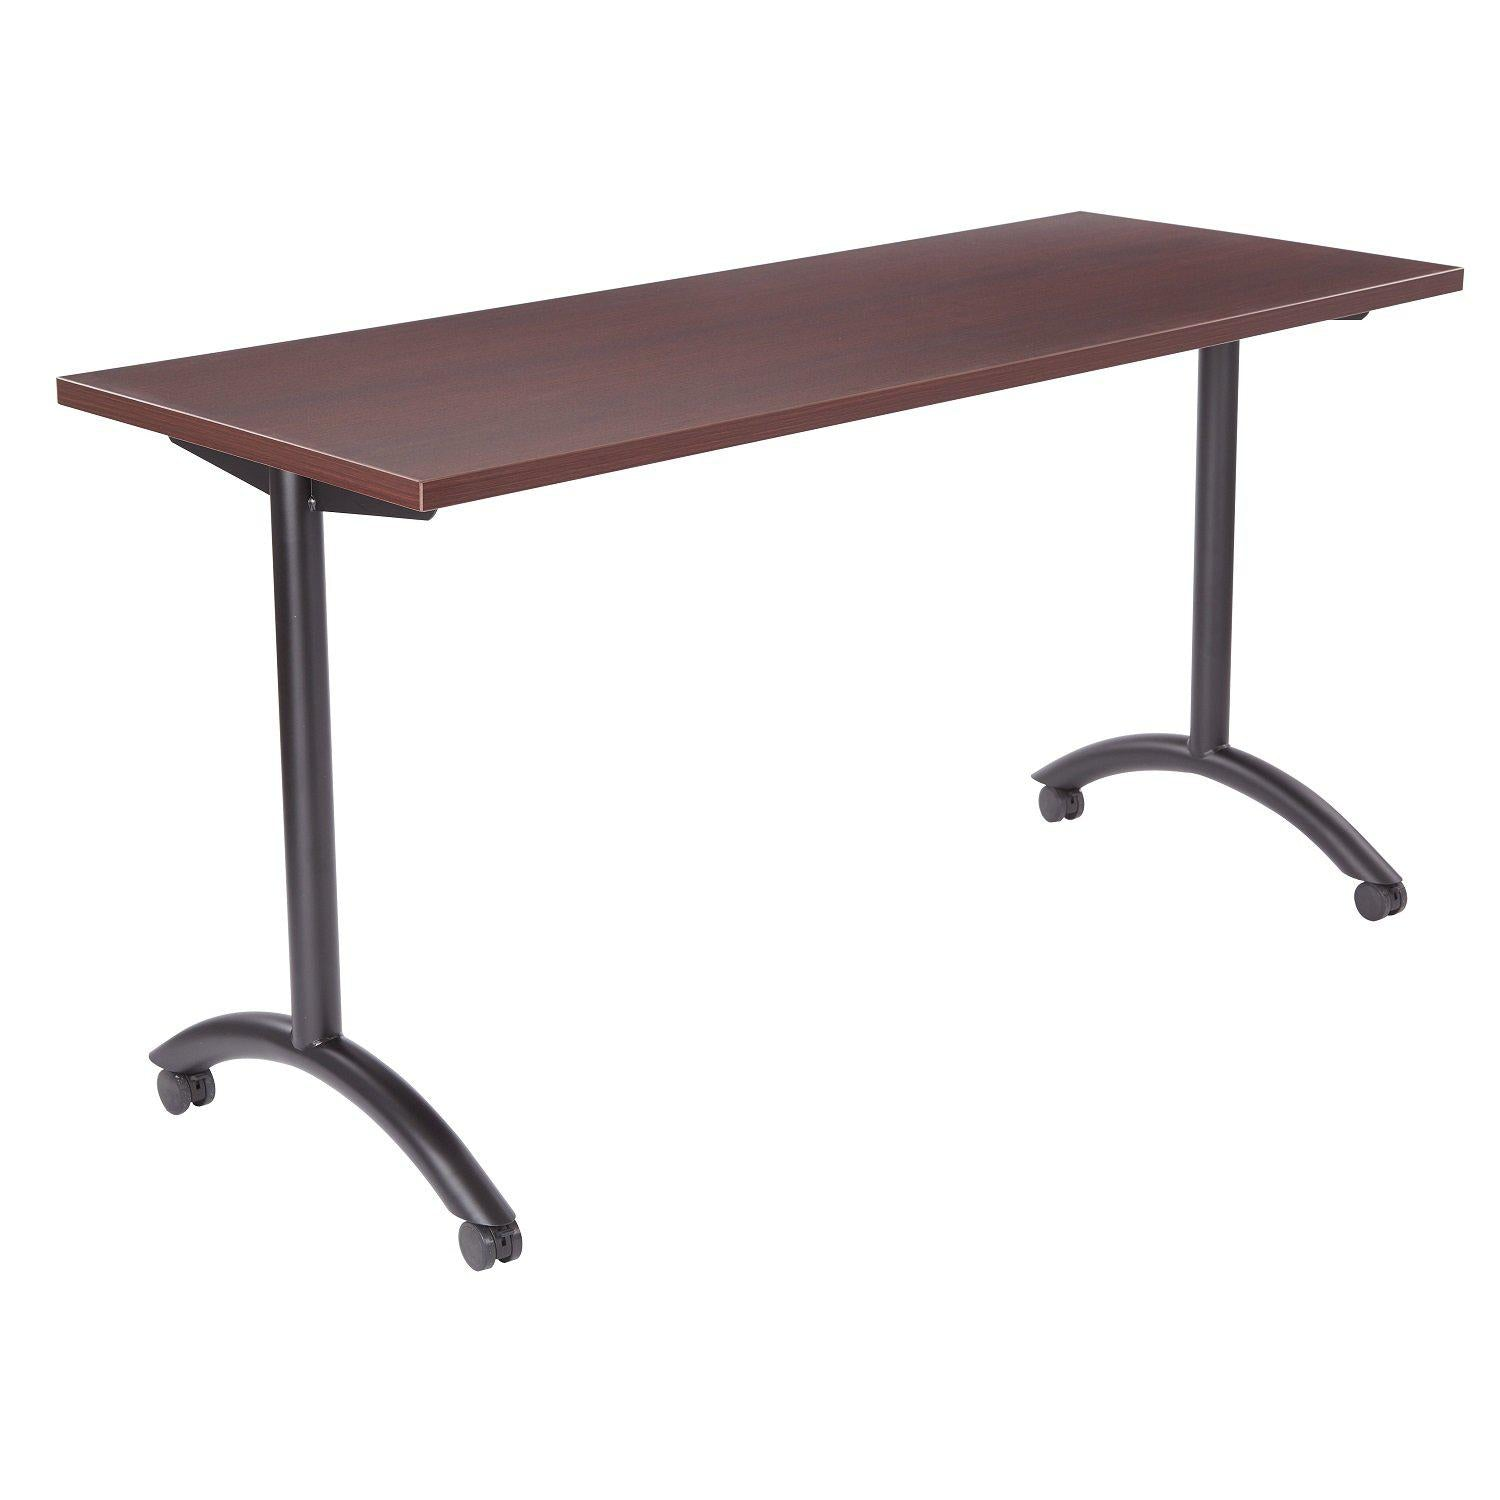 "Pace Table with T-Arc Legs, 48"" x 24"""